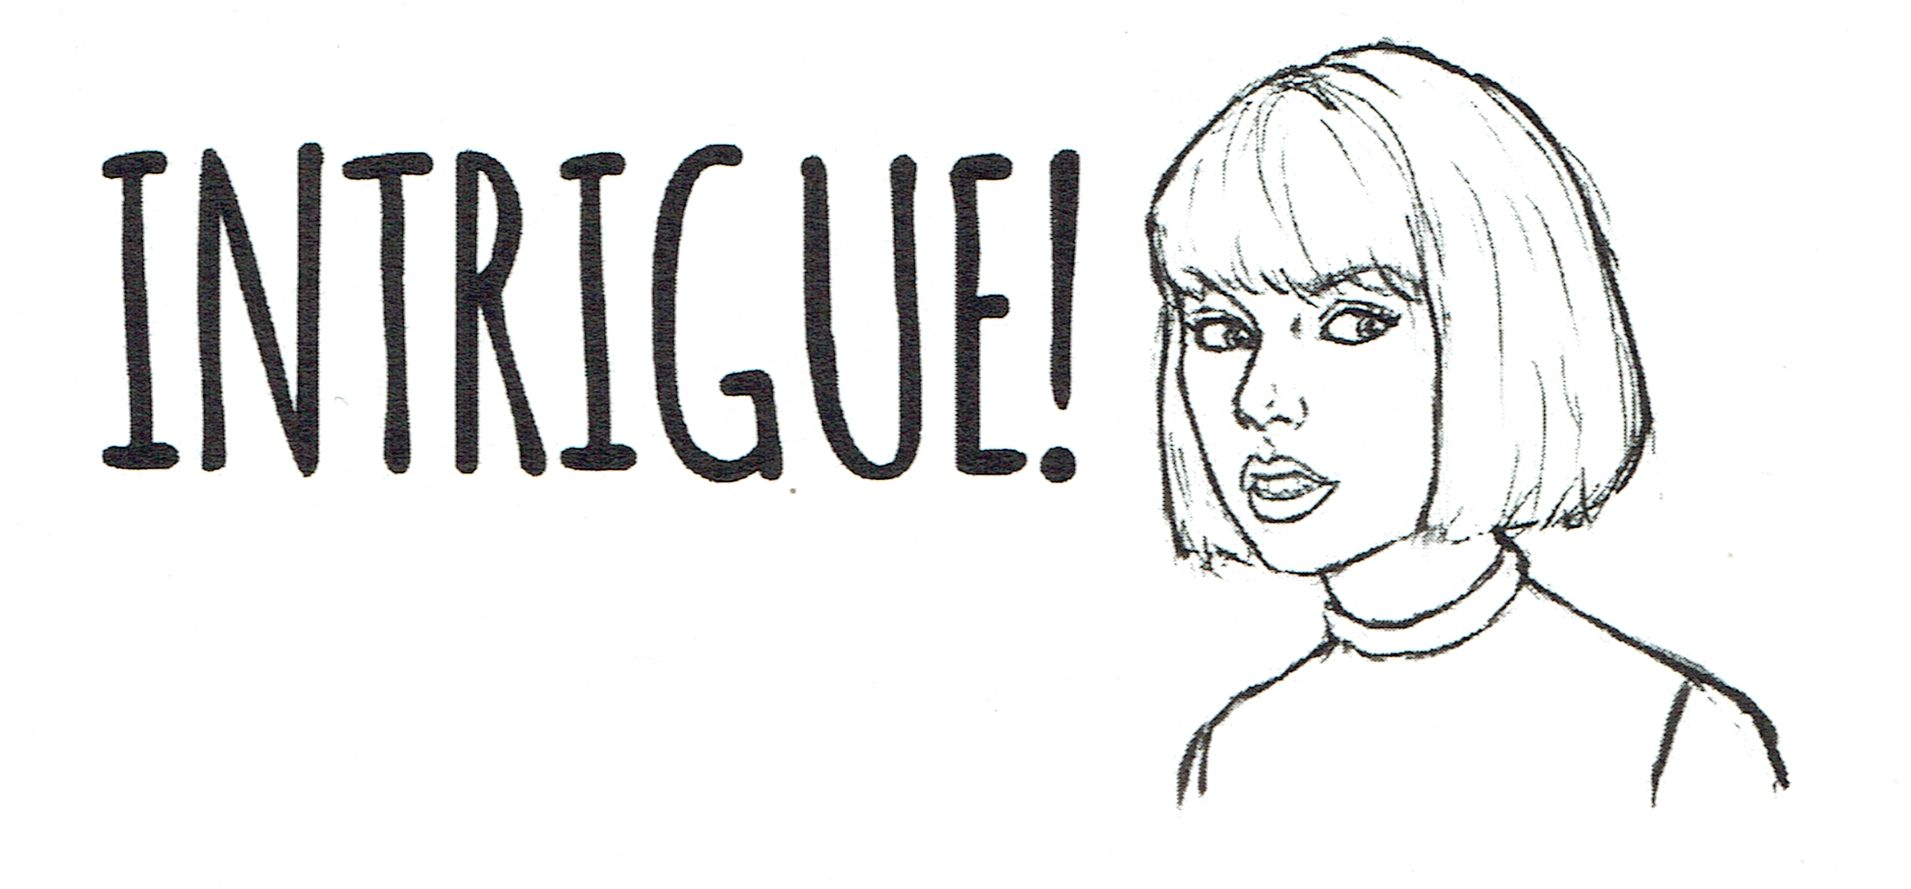 Taylor Swift: Girl Detective - Intrigue sticker.